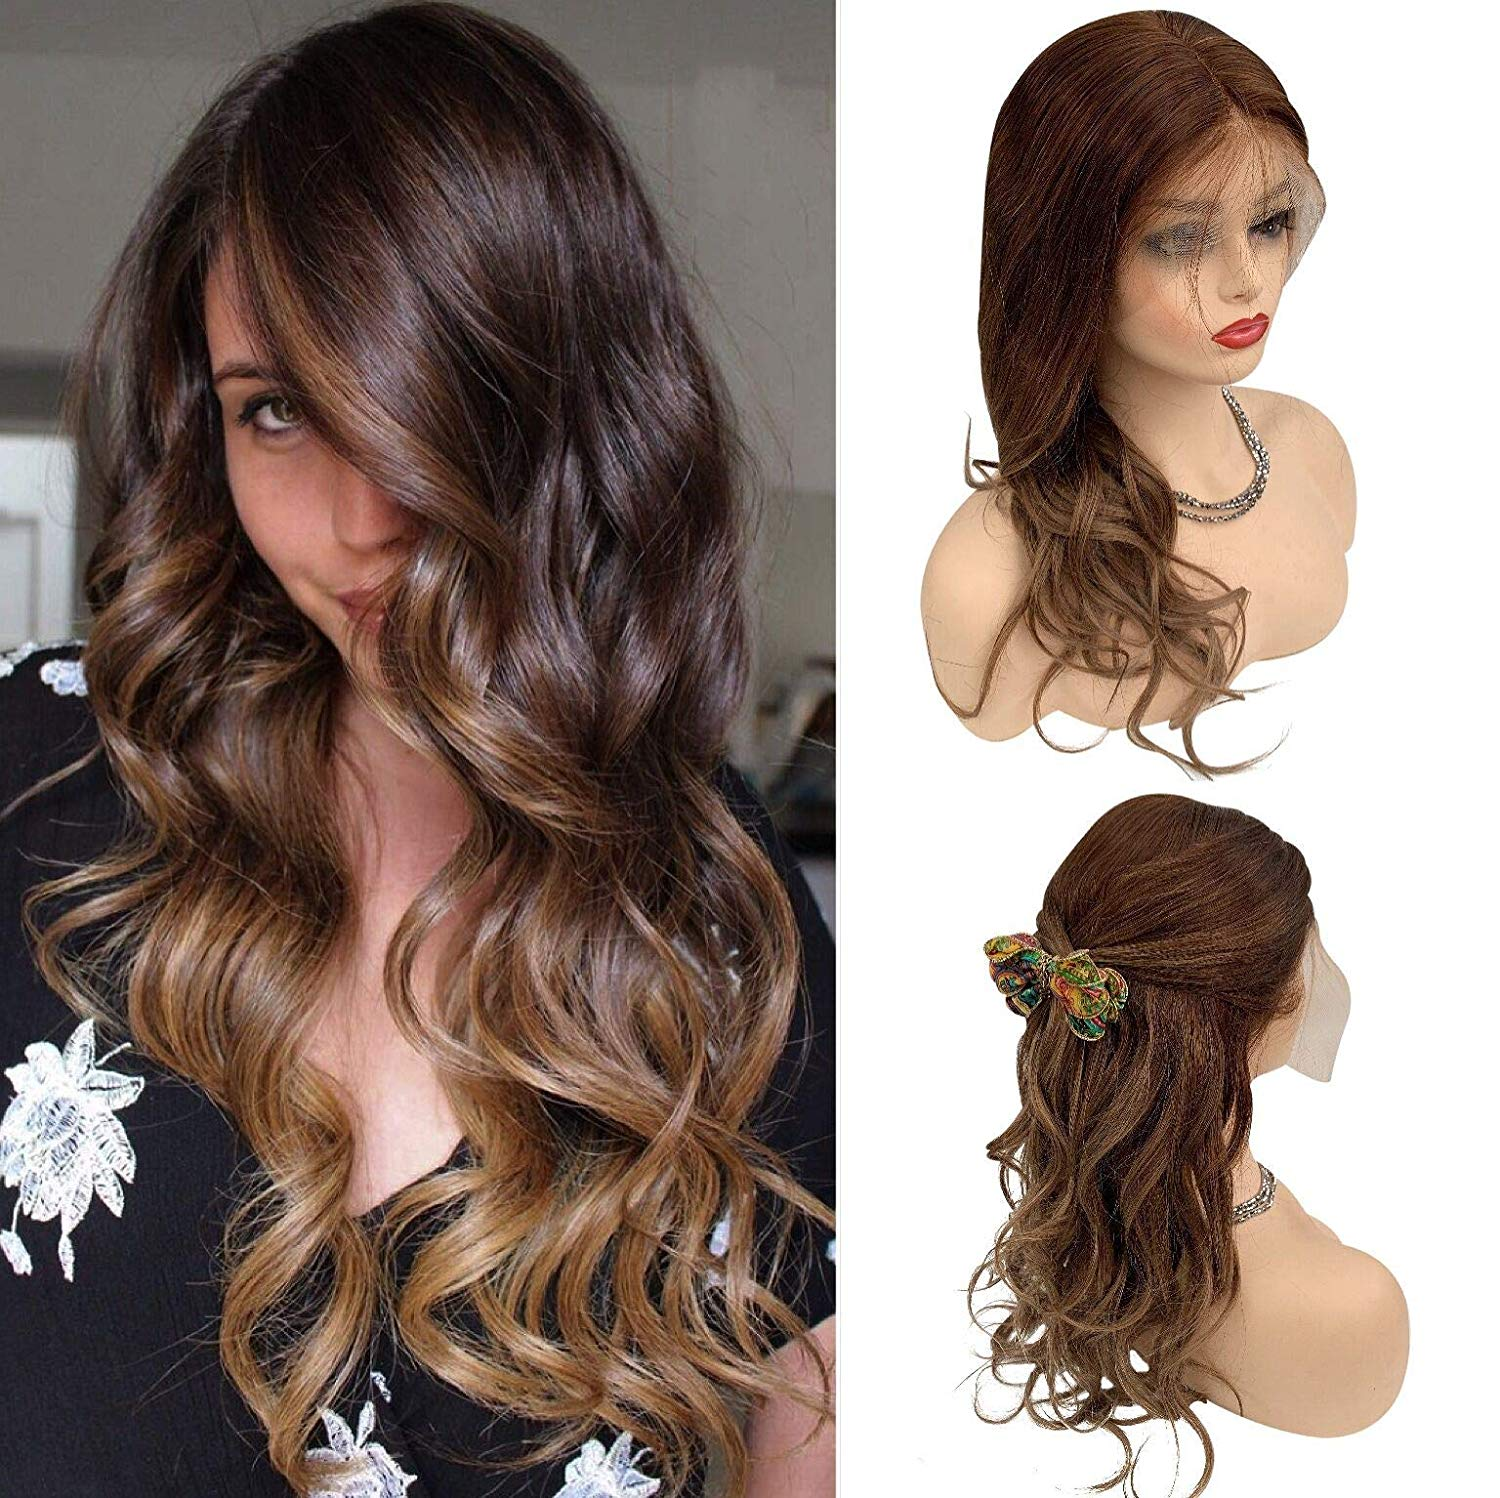 Human Hair Lace Front Natural Wave Wigs For Women Medium Brown Omber Ash Brown Highlights Wavy Wigs Pre Plucked Full Head #4/8A